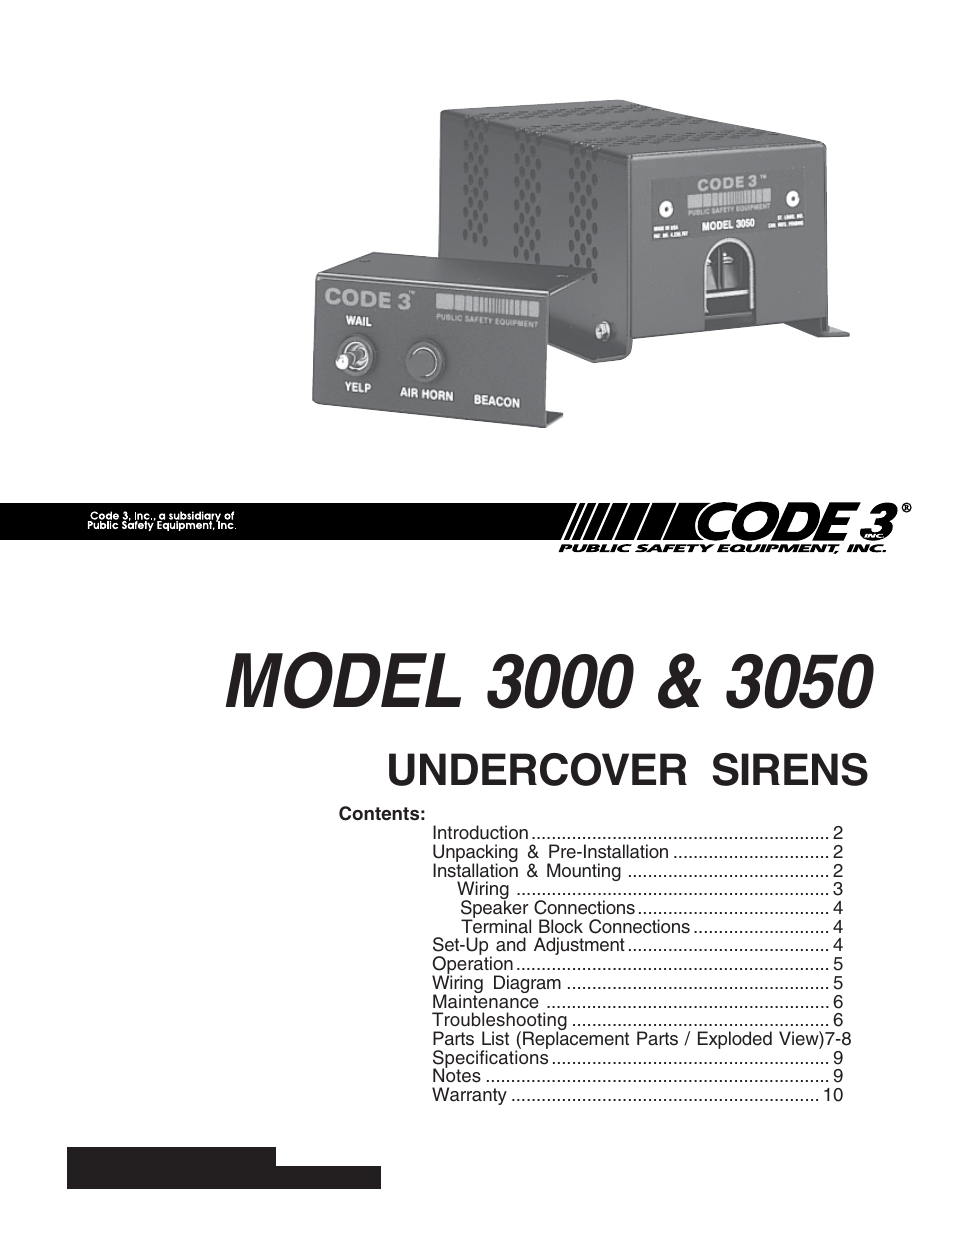 code 3 undercover siren page1 code 3 undercover siren user manual 10 pages code 3 siren wiring diagram at n-0.co